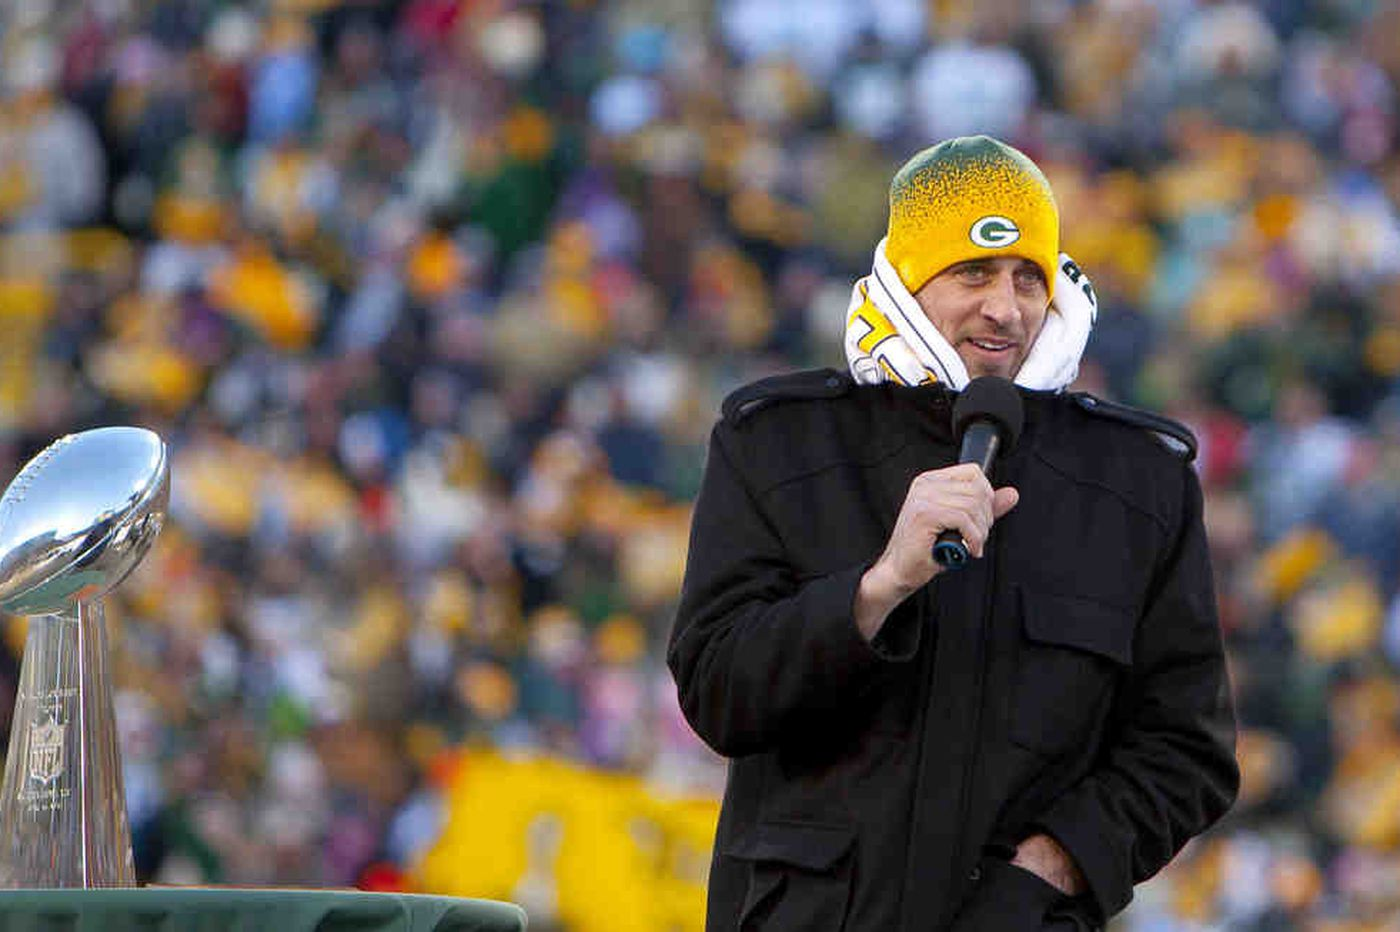 NFL: Warm welcome for Packers in frigid Green Bay